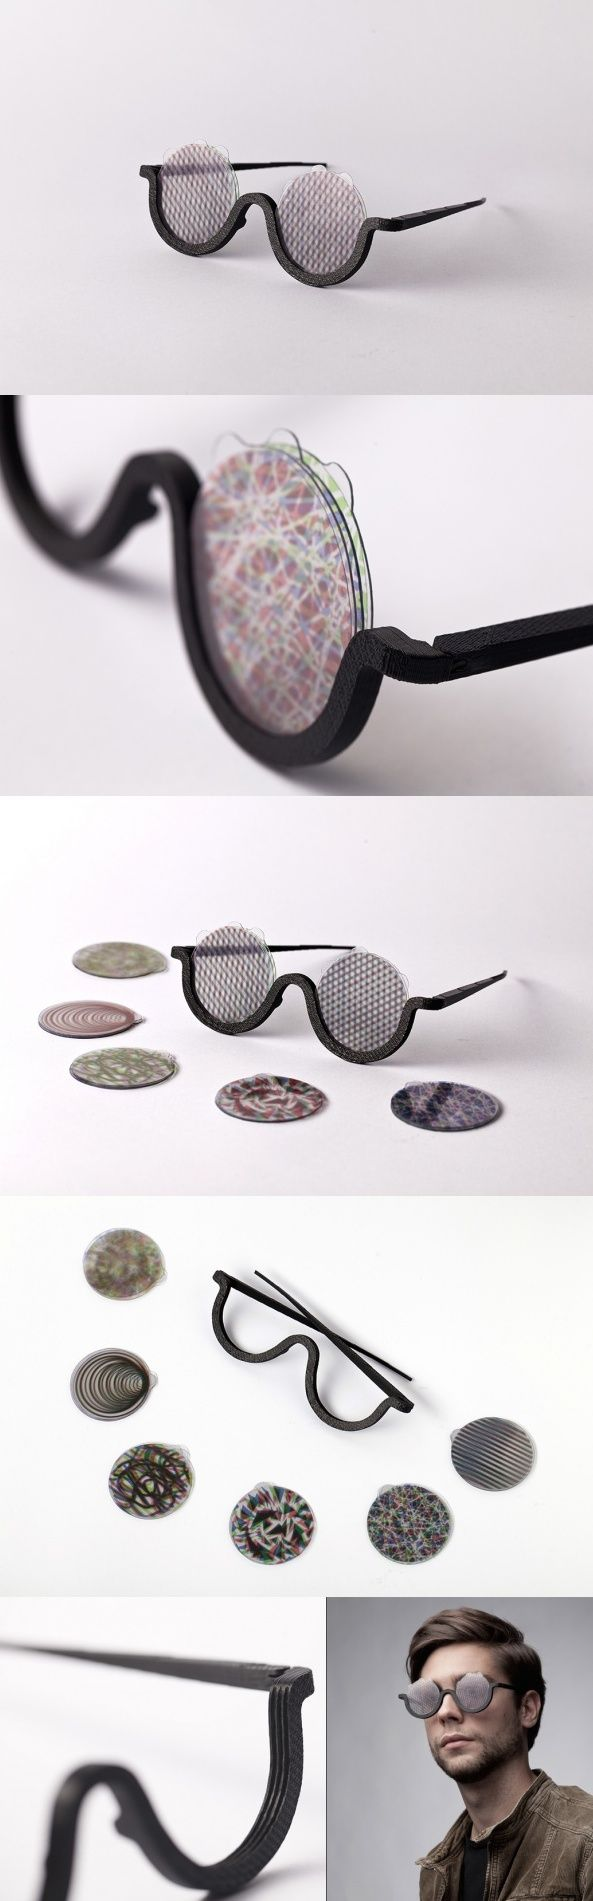 Designed with music in mind, MOOD is a wearable accessory that merges the visible with the audible to enhance the listening experience. 6 different lenses create optical effects in almost endless variation. One, the Moiré-effect, is a visual perception that occurs when viewing a set of lines or dots that is superimposed on another set of lines or dots, where the sets differ in relative size, angle, or spacing. Others can be created by adding, removing or recombining the lenses to create ...